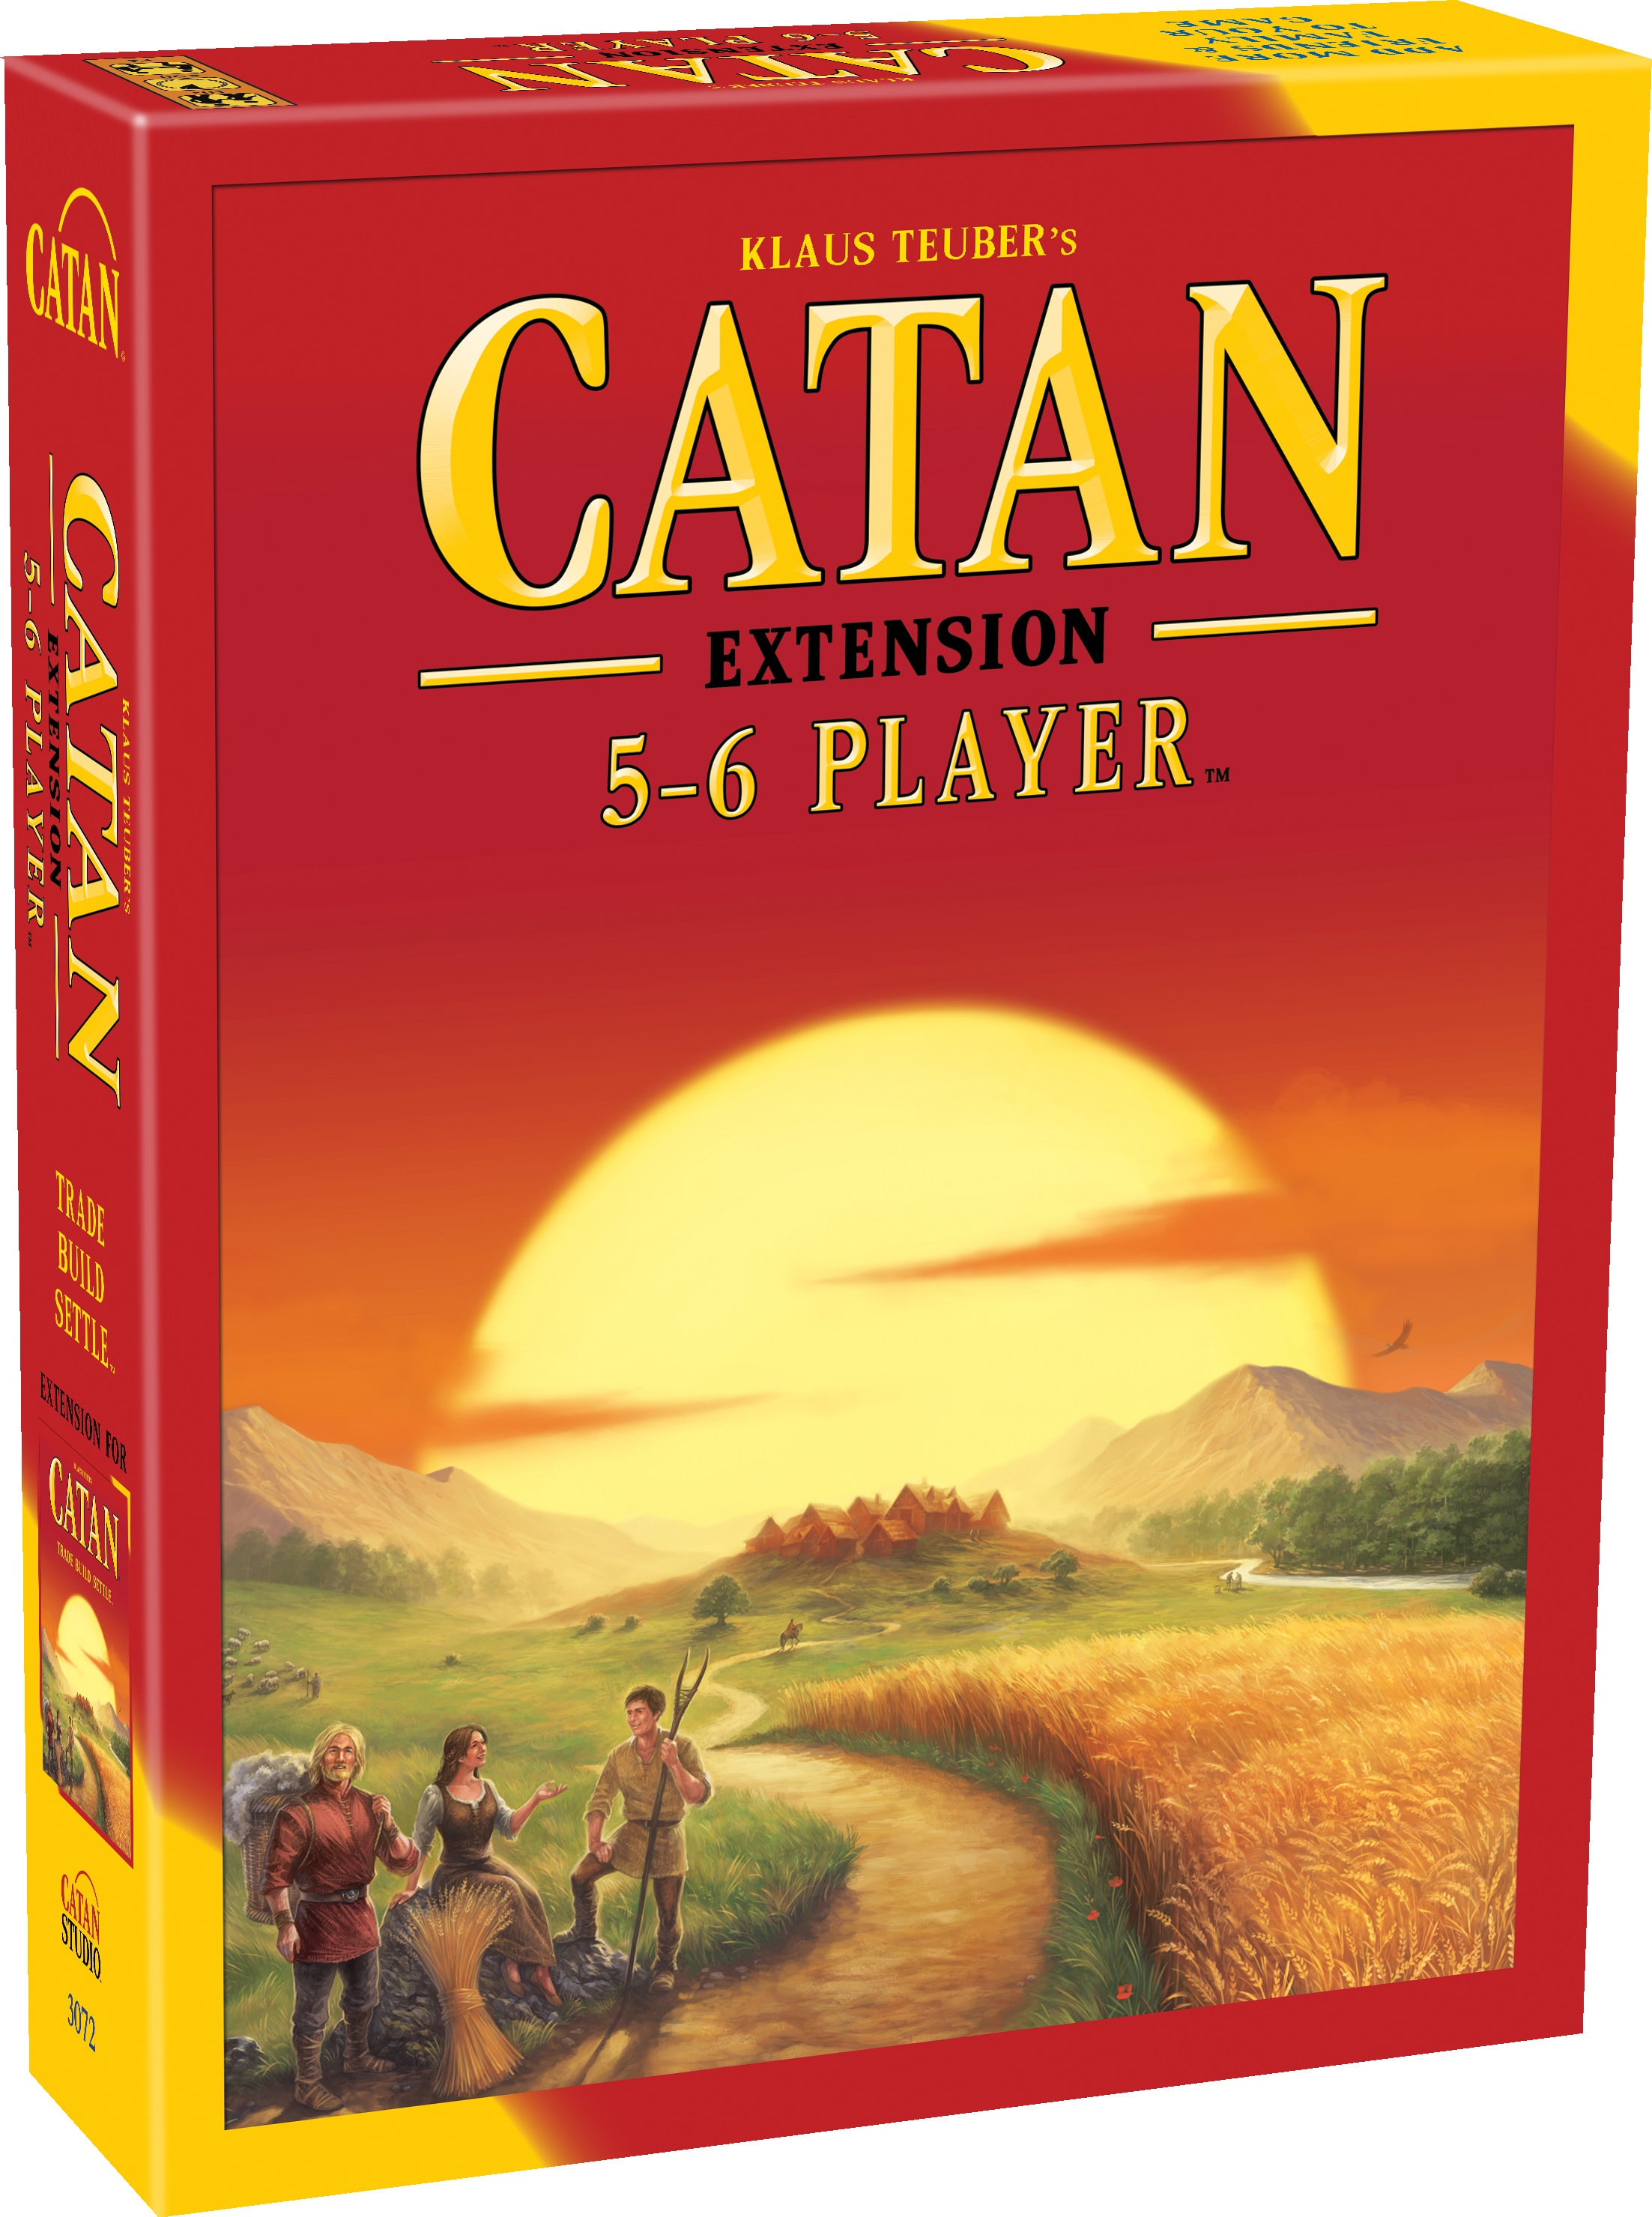 Catan: 5-6 Player Extension | Davis Cards & Games